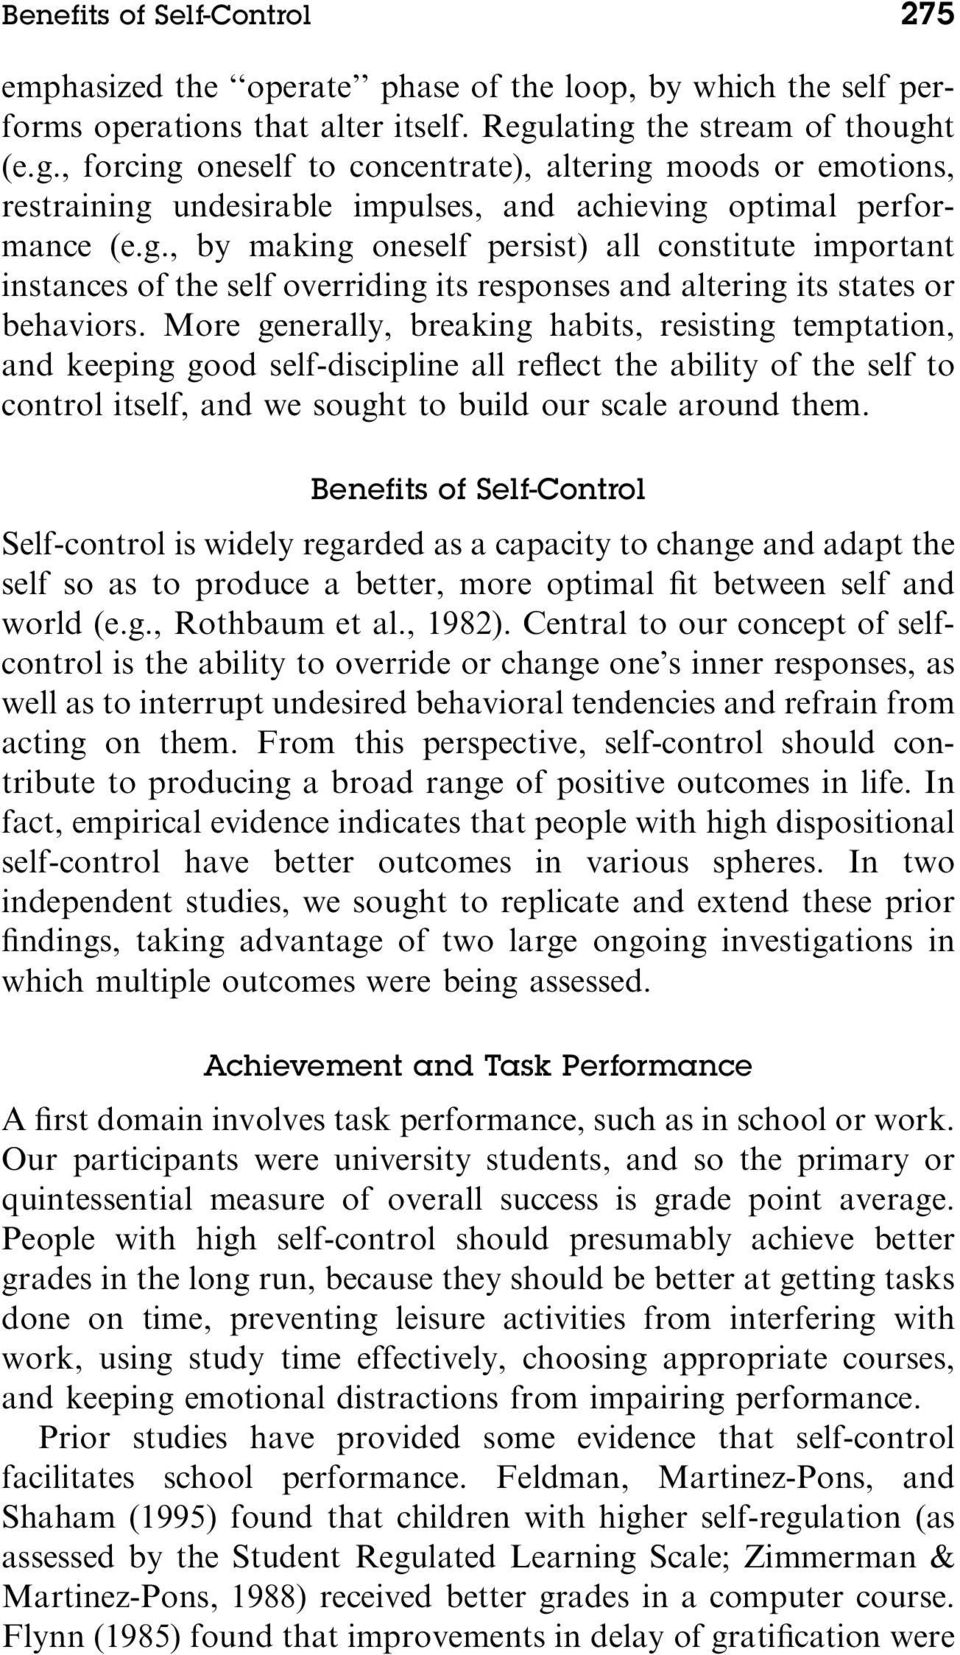 More generally, breaking habits, resisting temptation, and keeping good self-discipline all reflect the ability of the self to control itself, and we sought to build our scale around them.